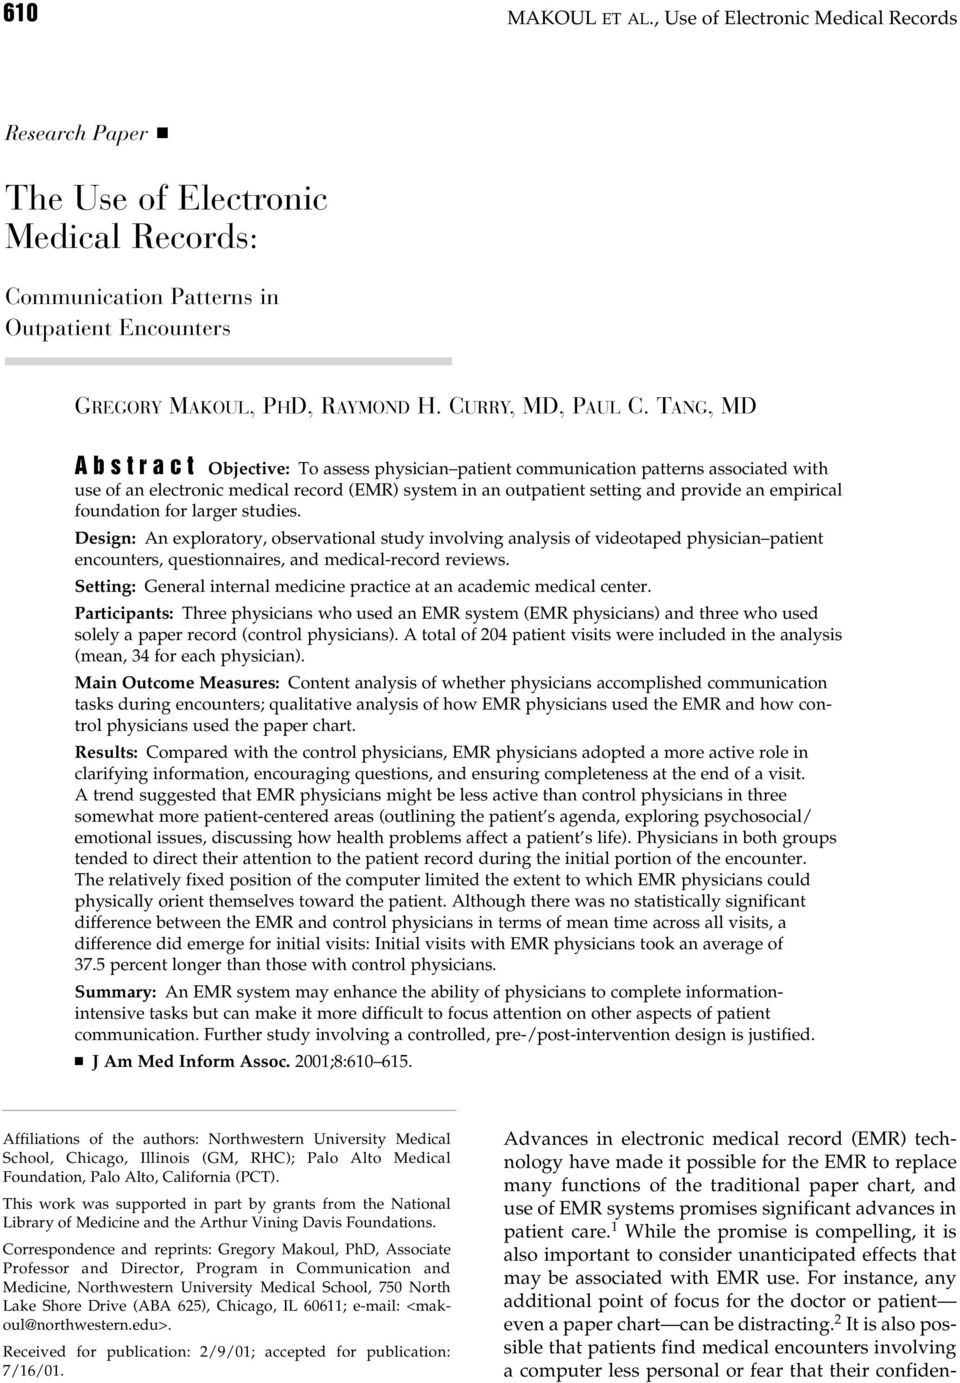 TANG, MD Abstract Objective: To assess physician patient communication patterns associated with use of an electronic medical record (EMR) system in an outpatient setting and provide an empirical